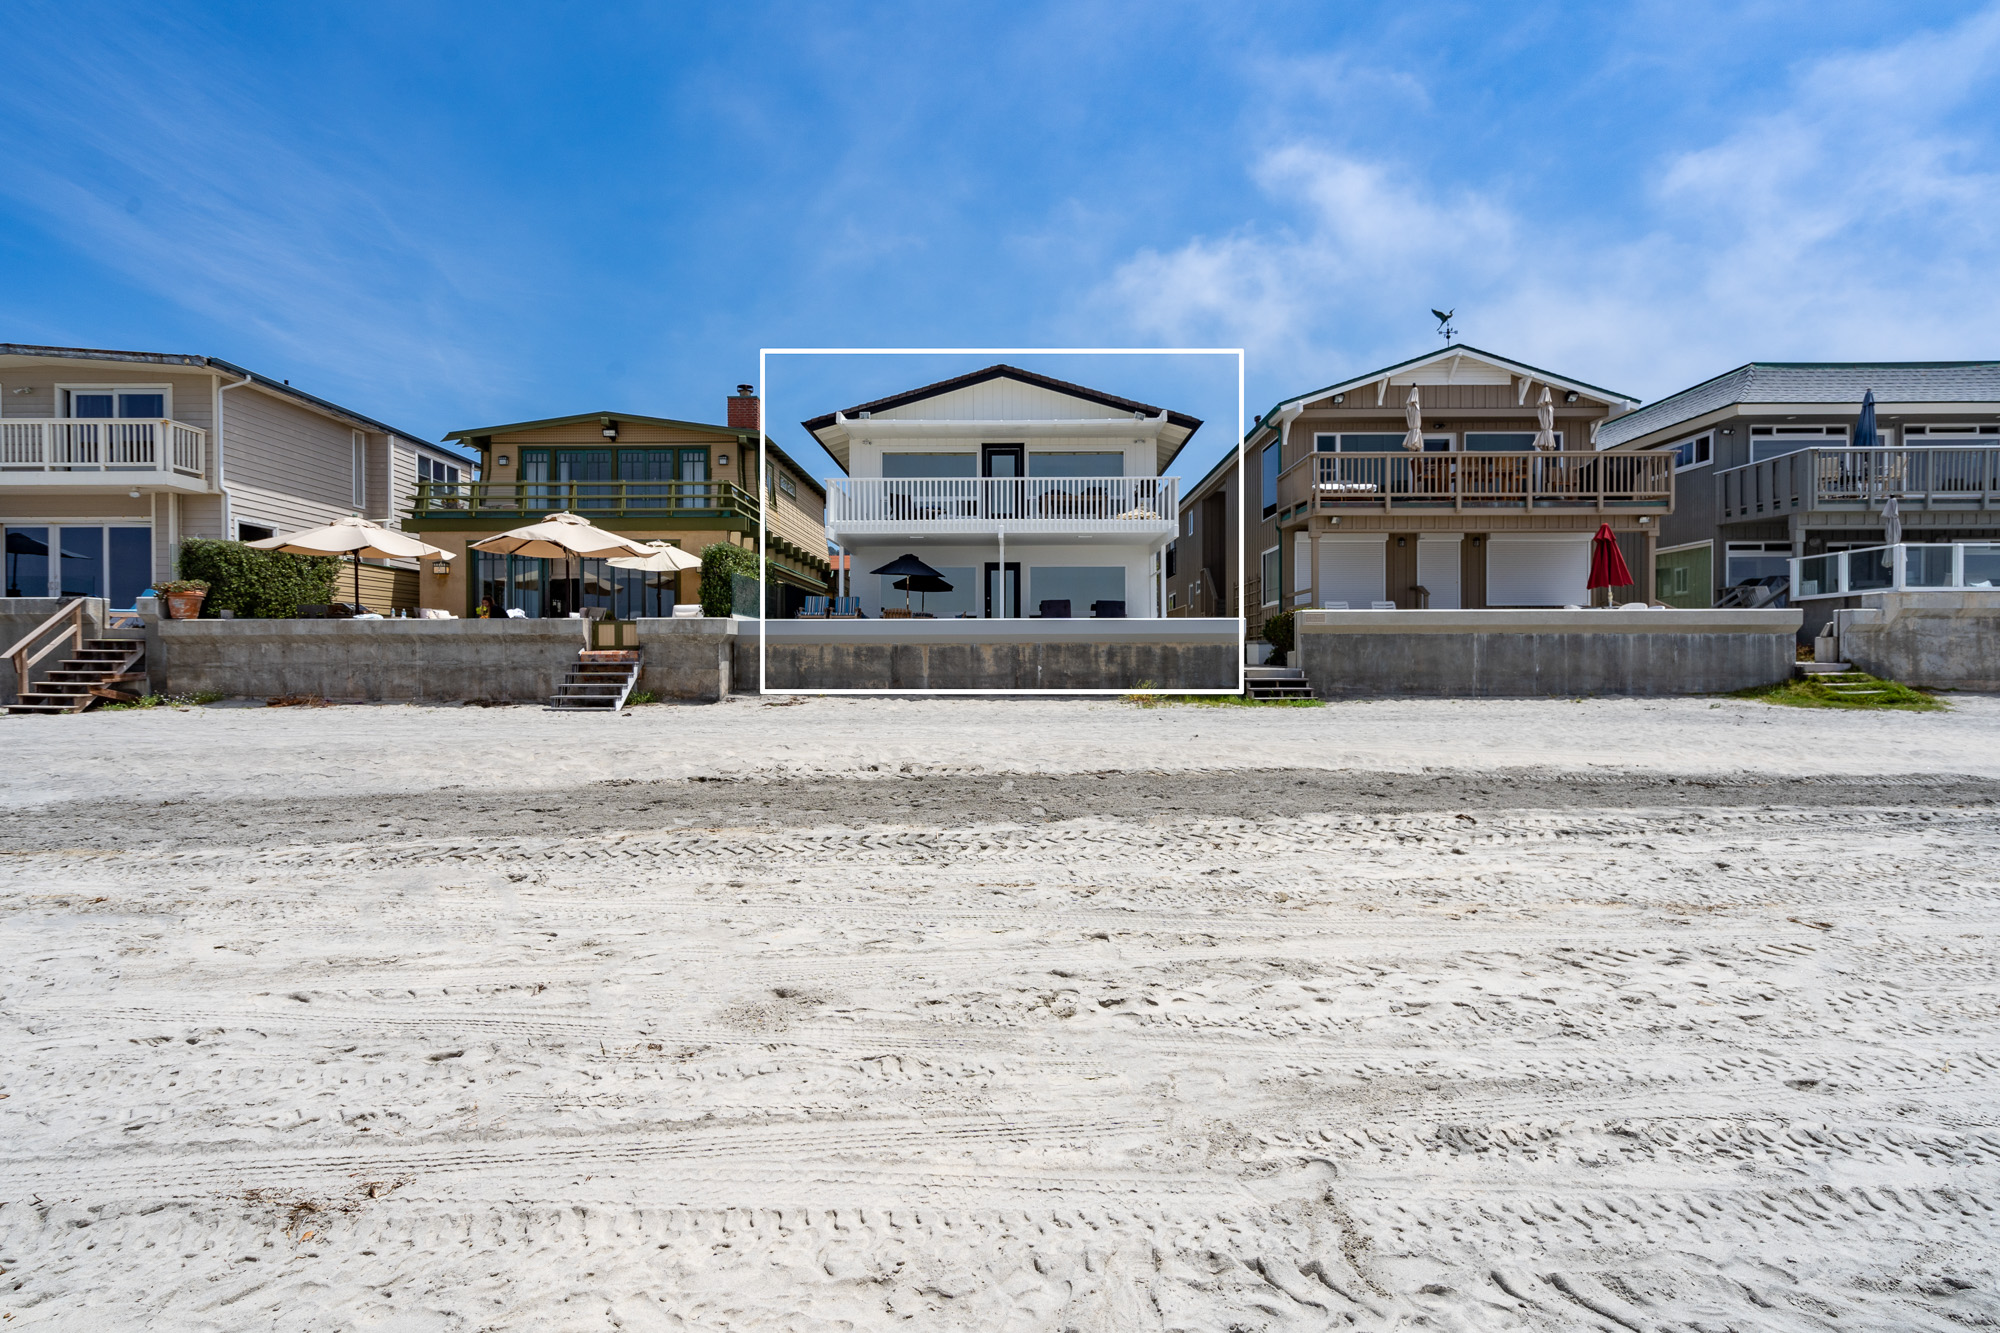 Sold 2020 Laura Represented Seller -  Del Mar, CA 92014